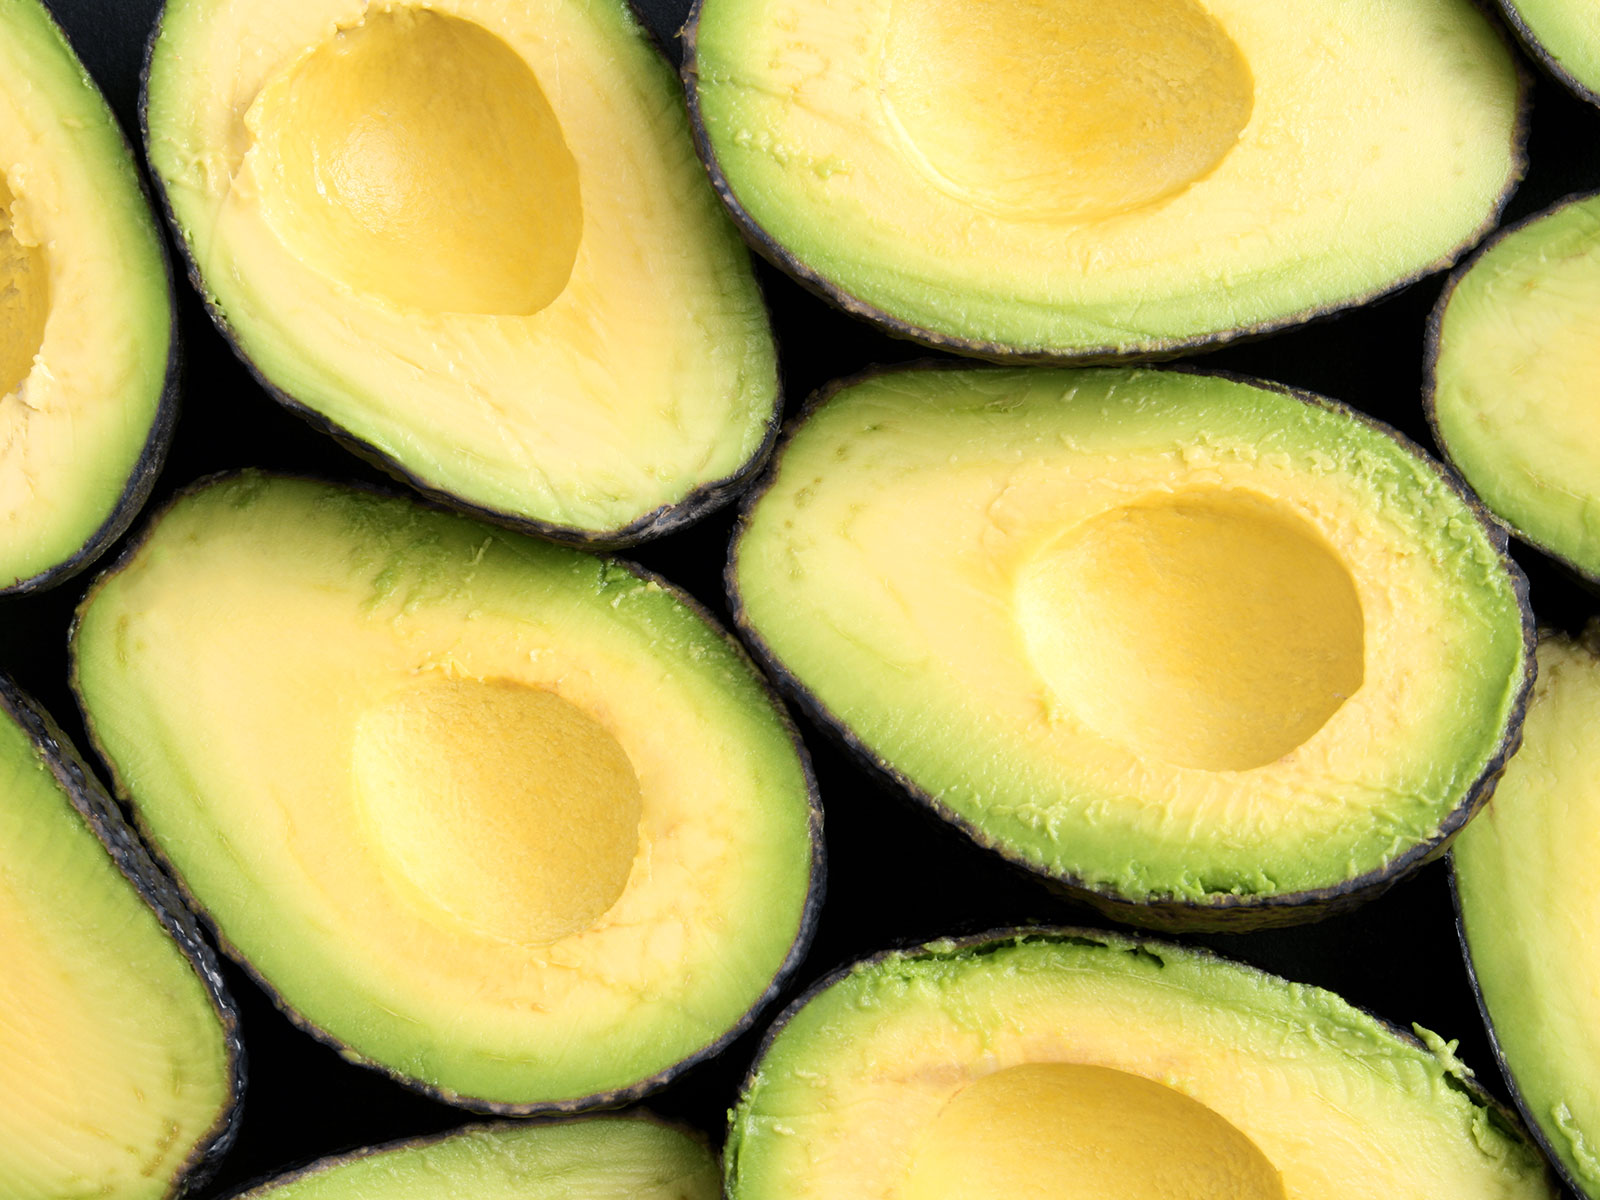 Why You Really Do Need to Wash Avocados Before Eating Them